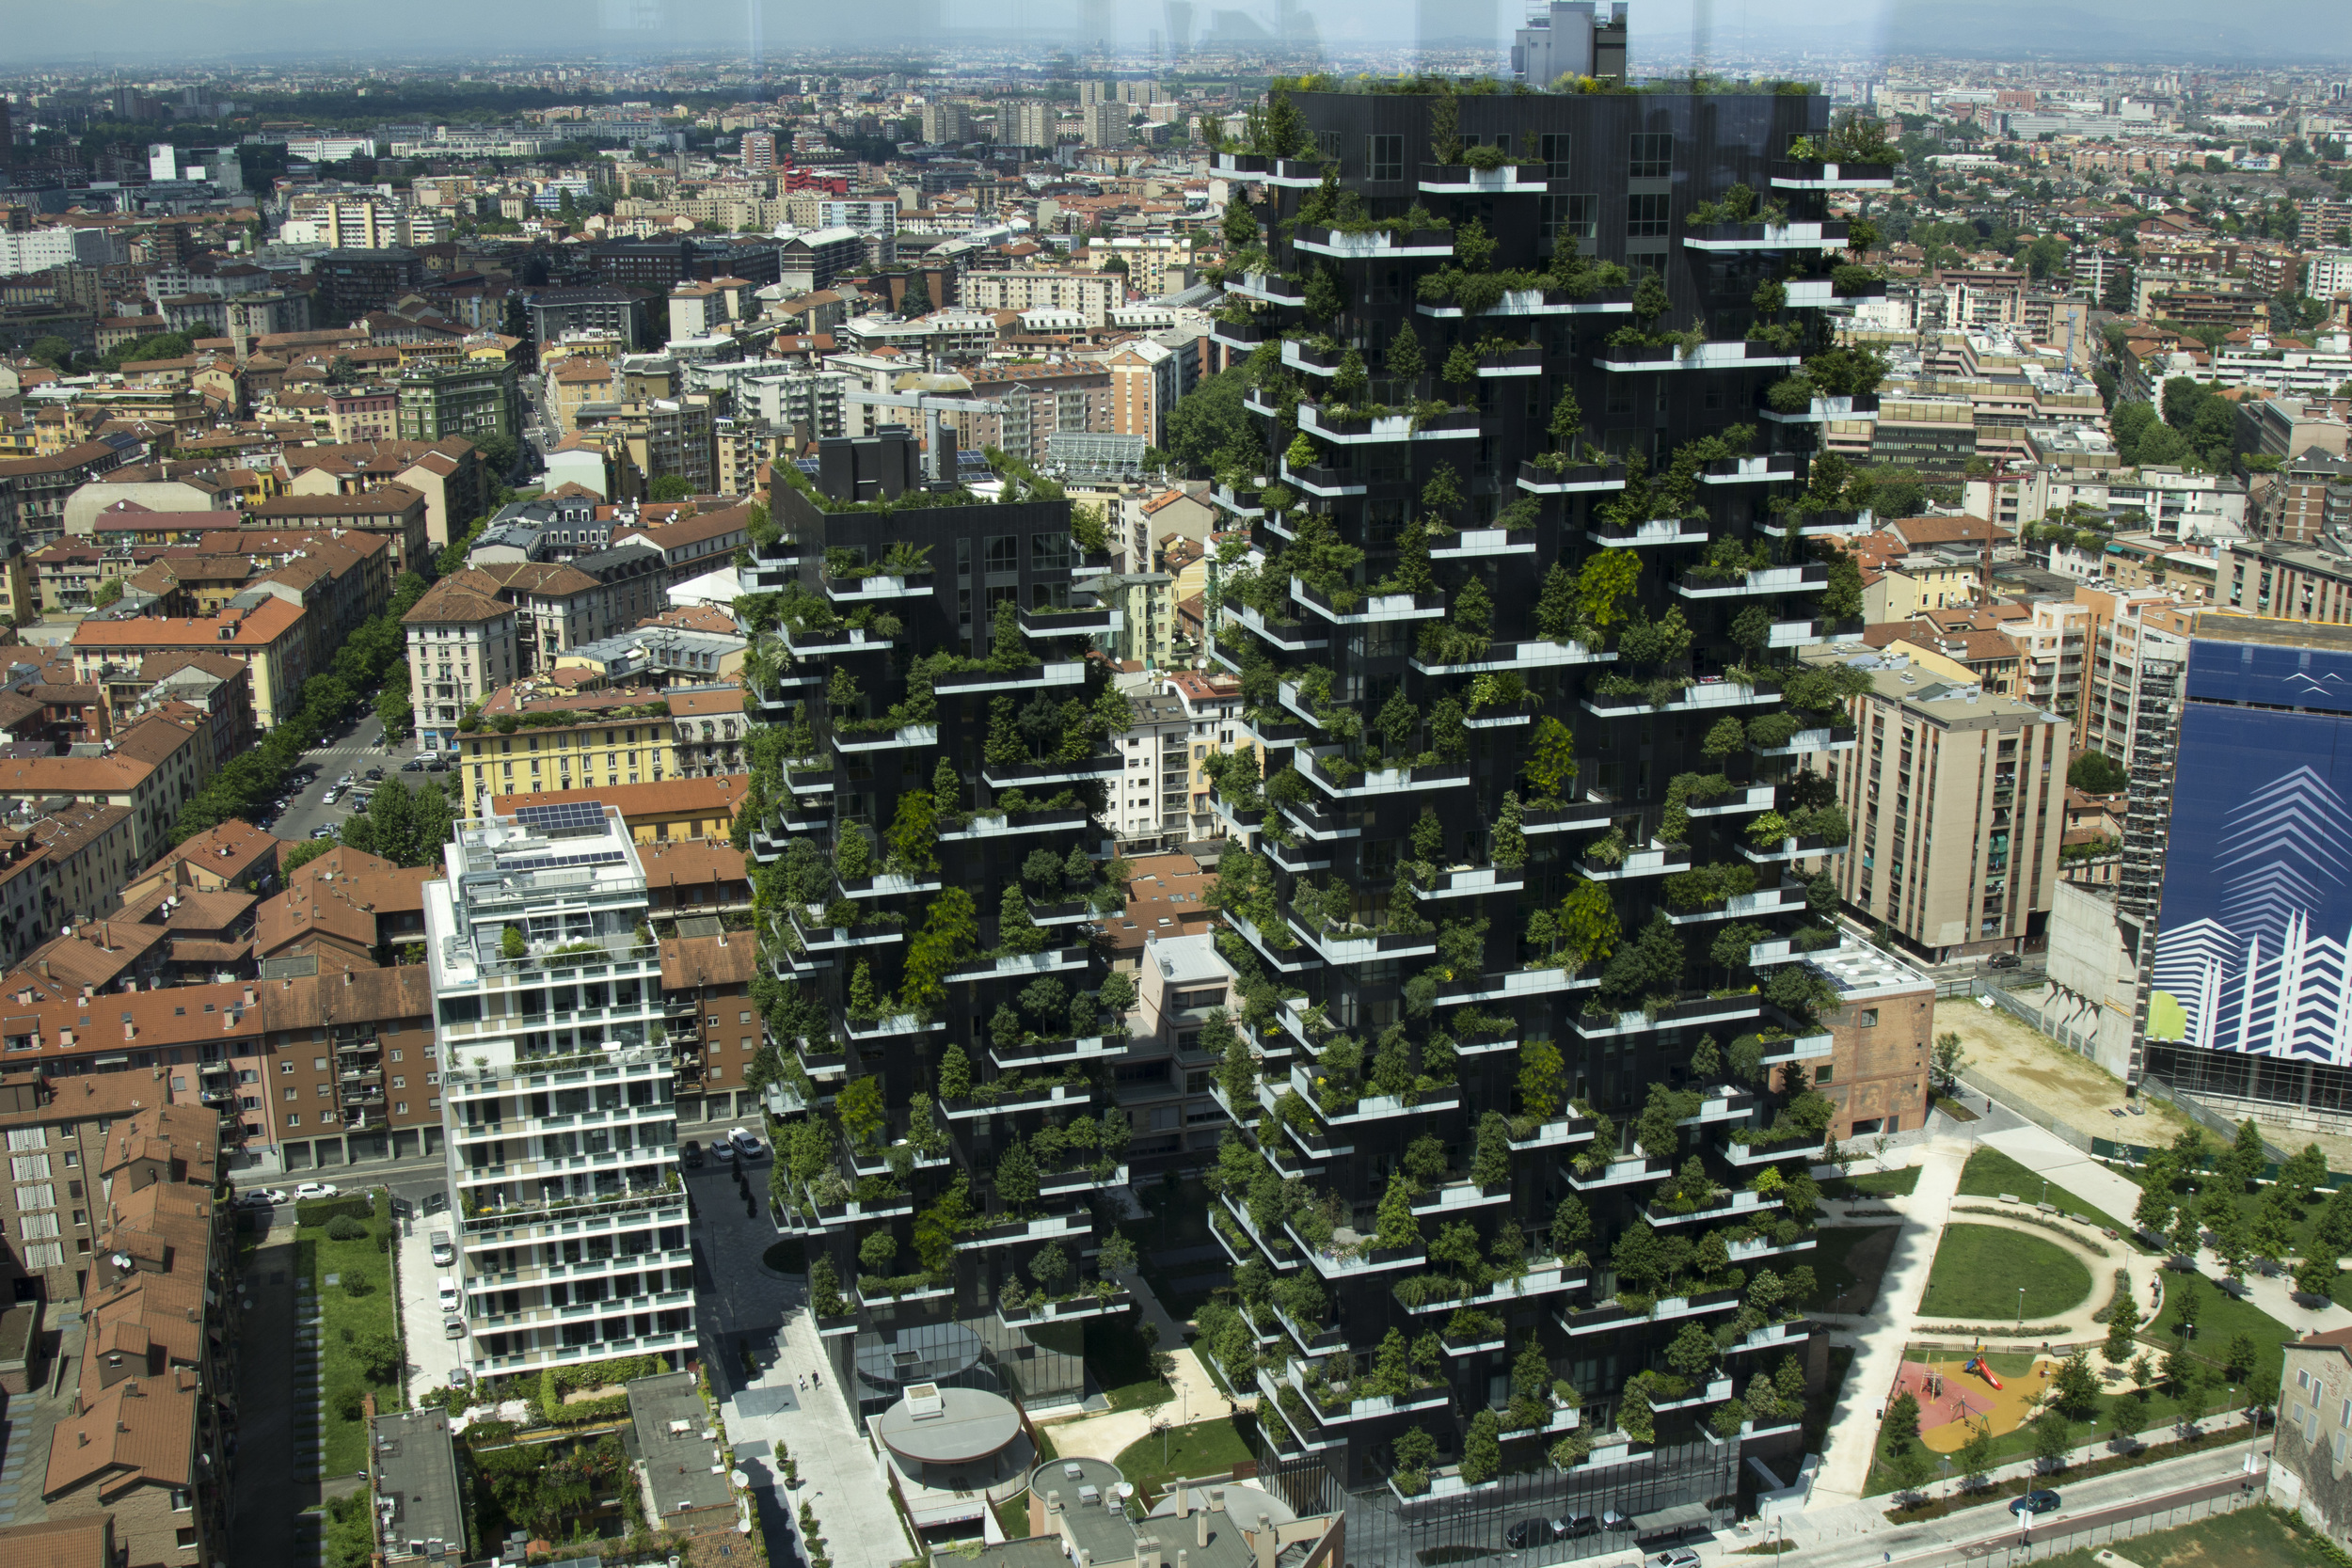 Vertical Gardens from the Unicredit Tower